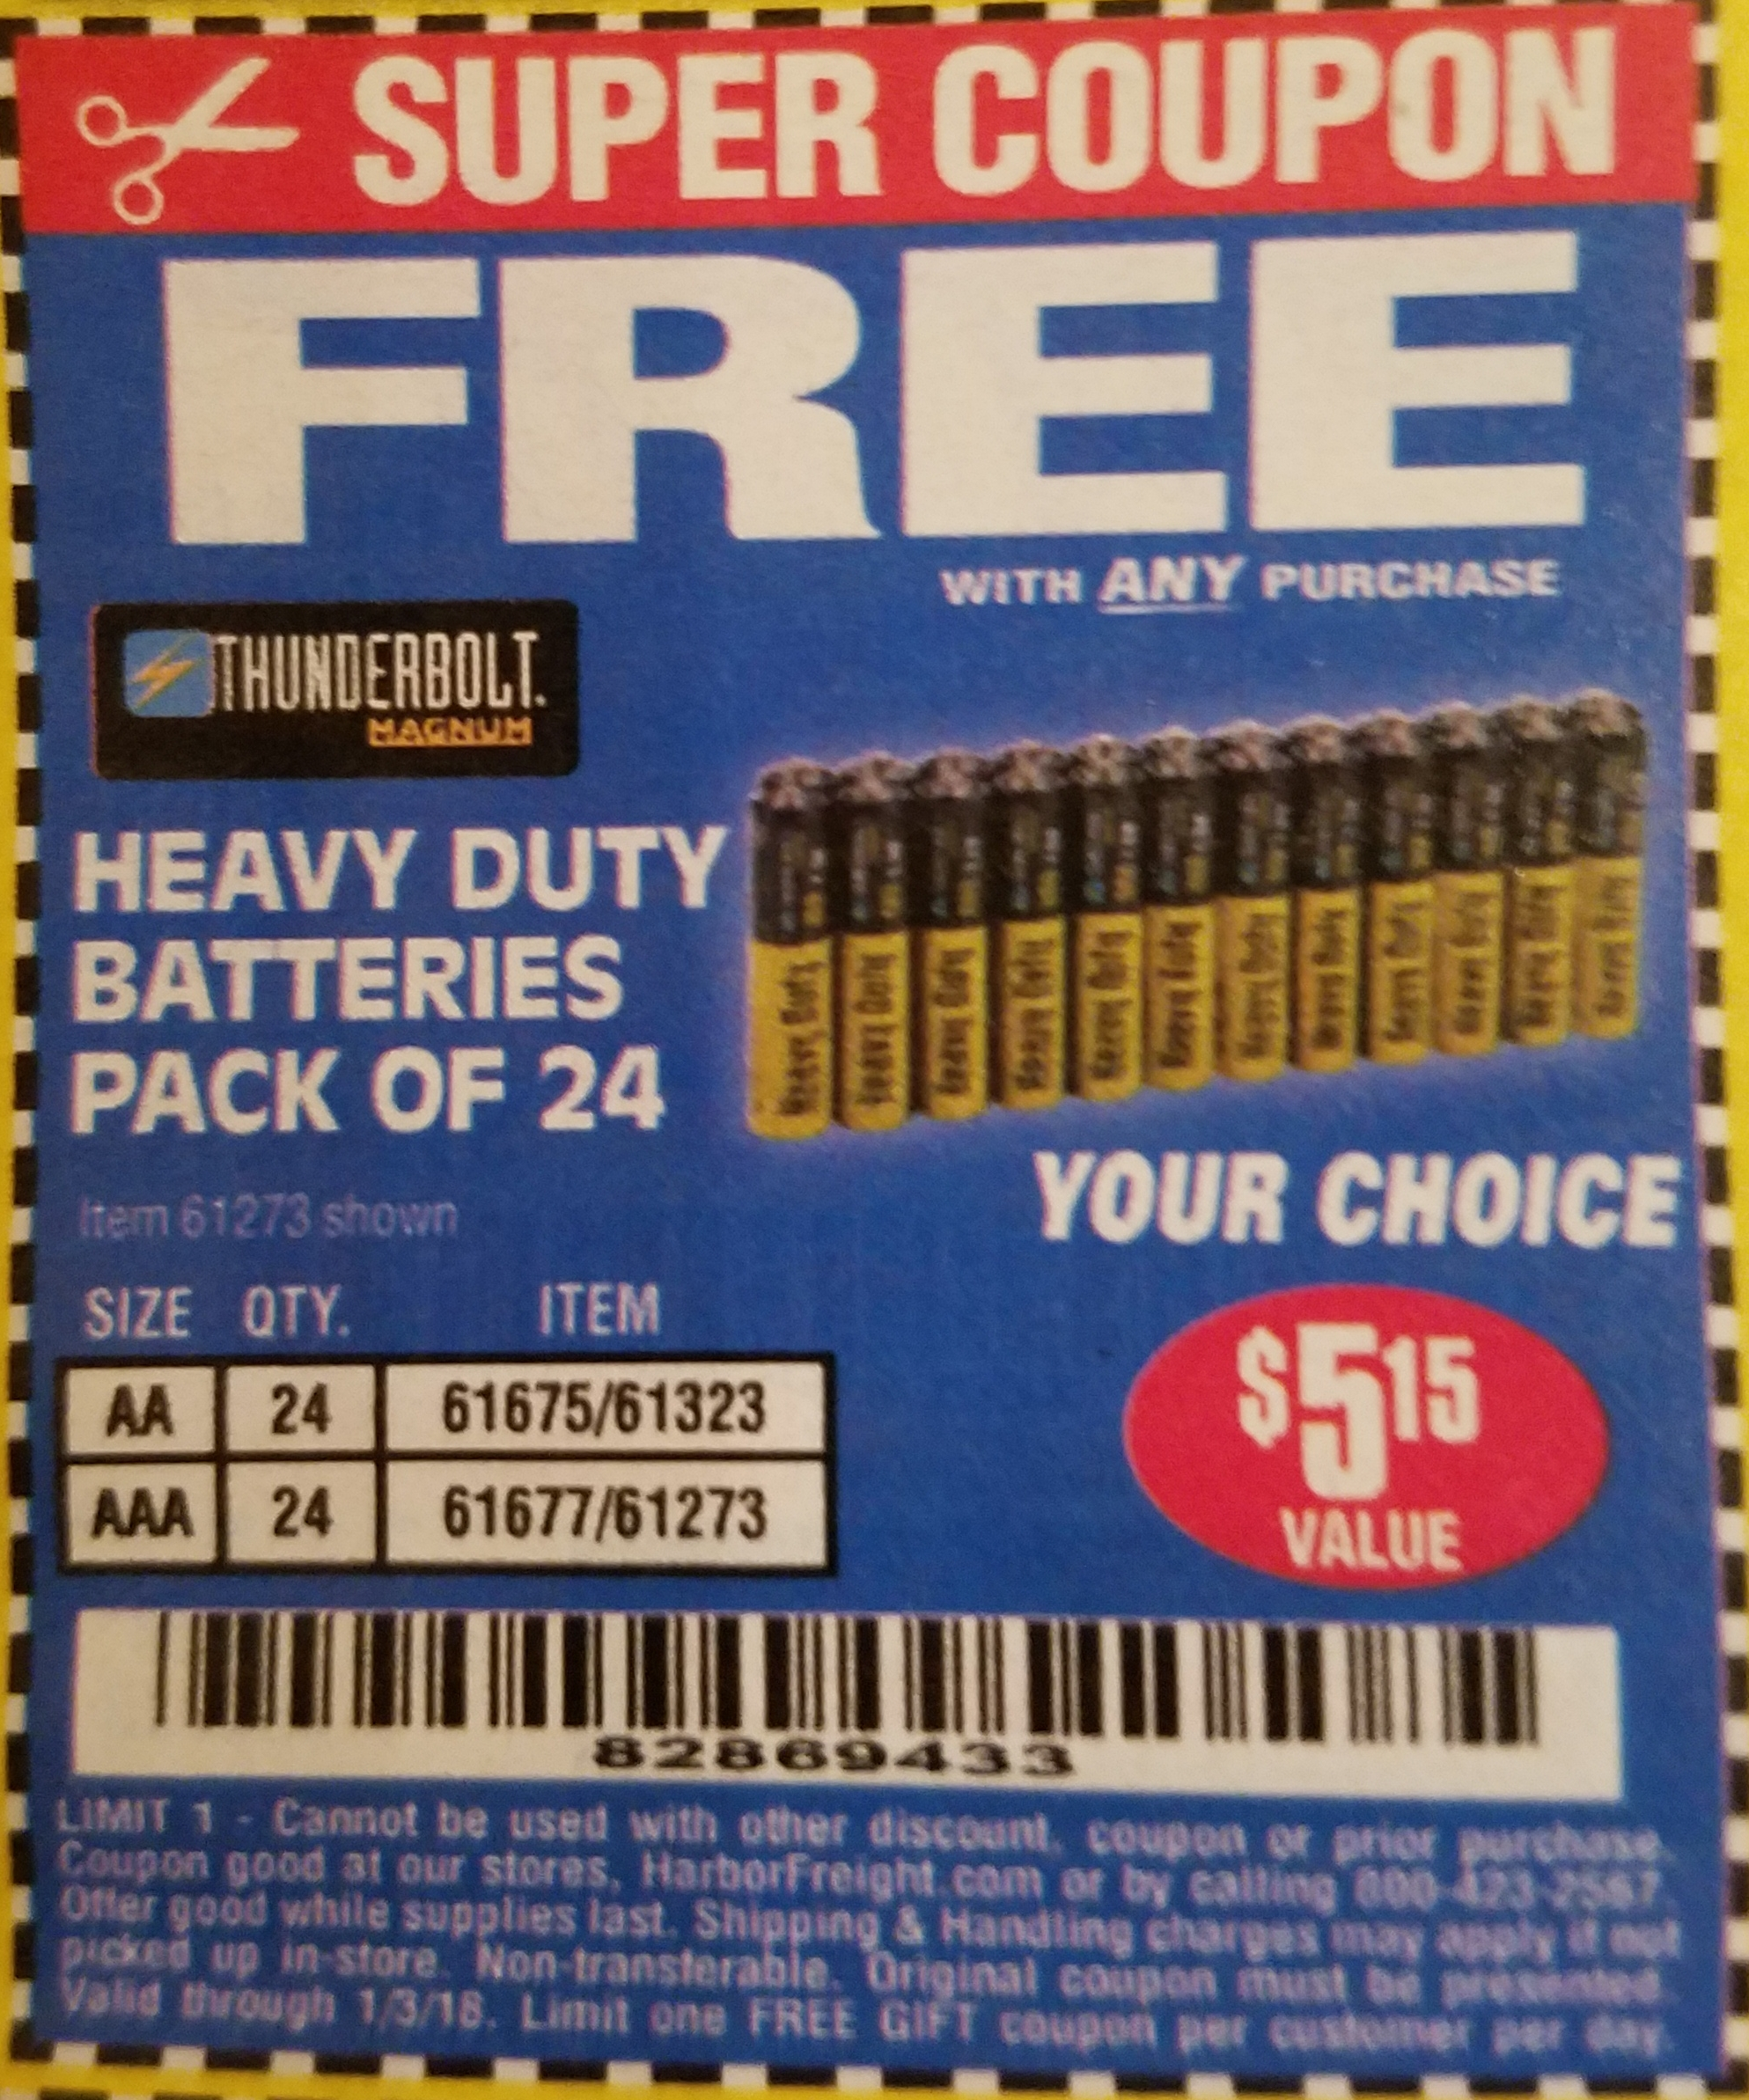 Harbor Freight 24 PACK HEAVY DUTY BATTERIES coupon